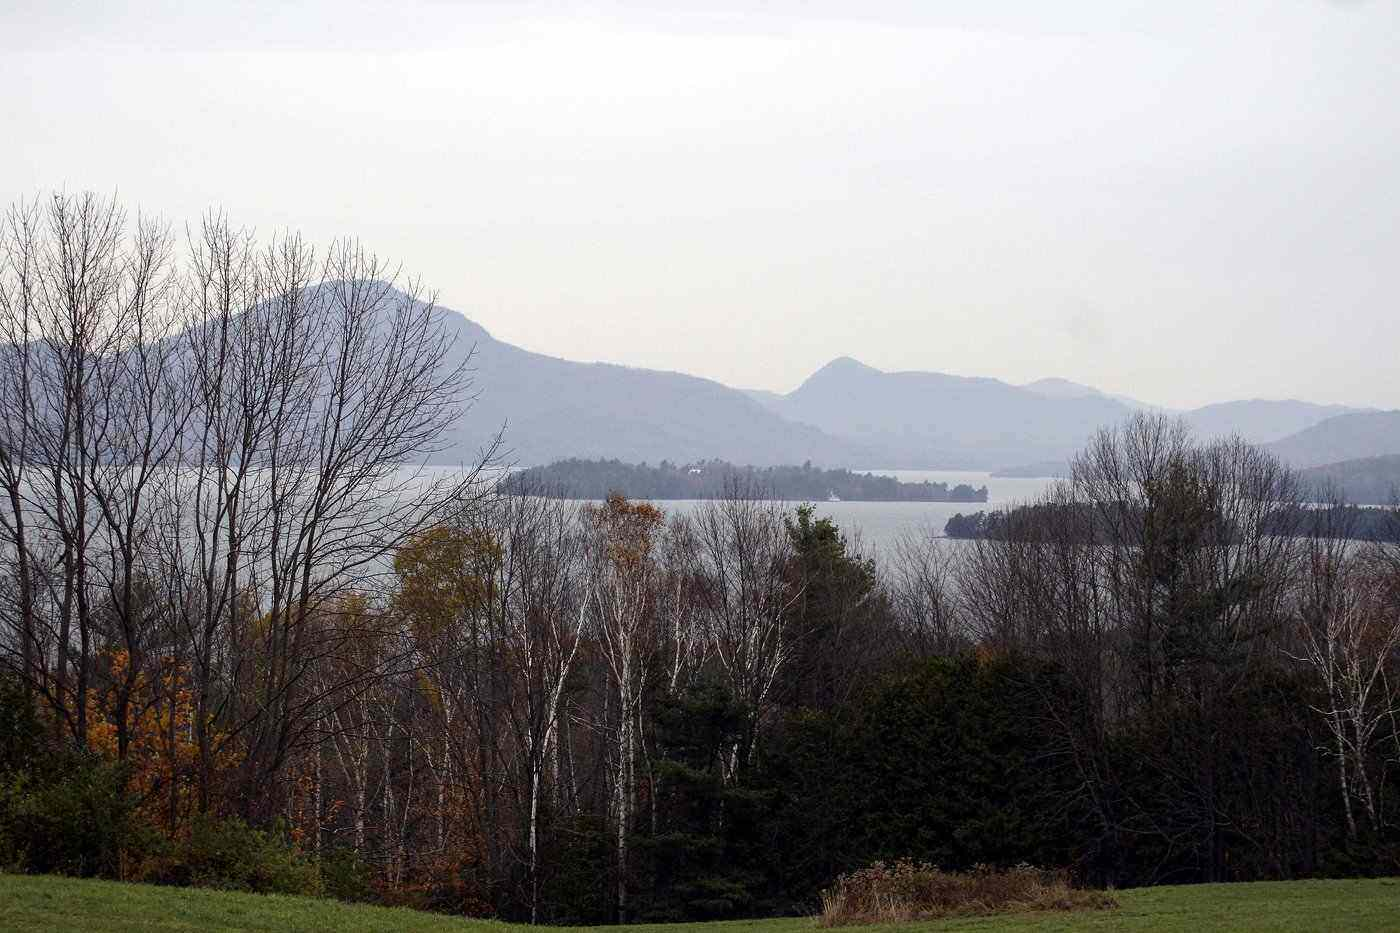 lake memphremagog - spectacular lakes to visit in canada in 2019